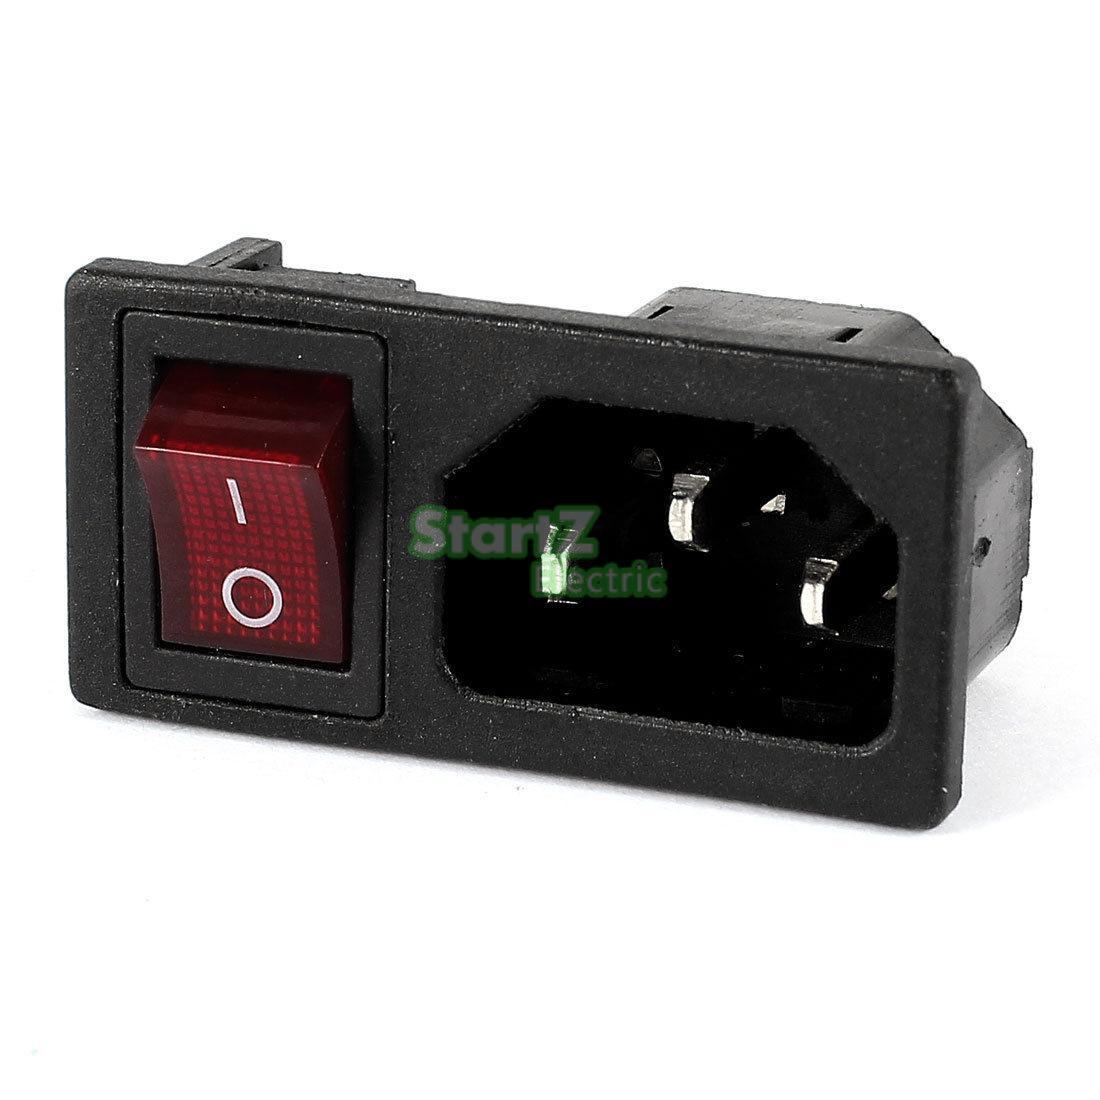 Panel IEC320 C14 Inlet Power Socket On/Off SPST Red Rocker Switch AC 250V 10A high quality 10pcs green light illuminated 20mm mounting holes on off spst 3pin round rocker switch 6a 250v 10a 125v ac